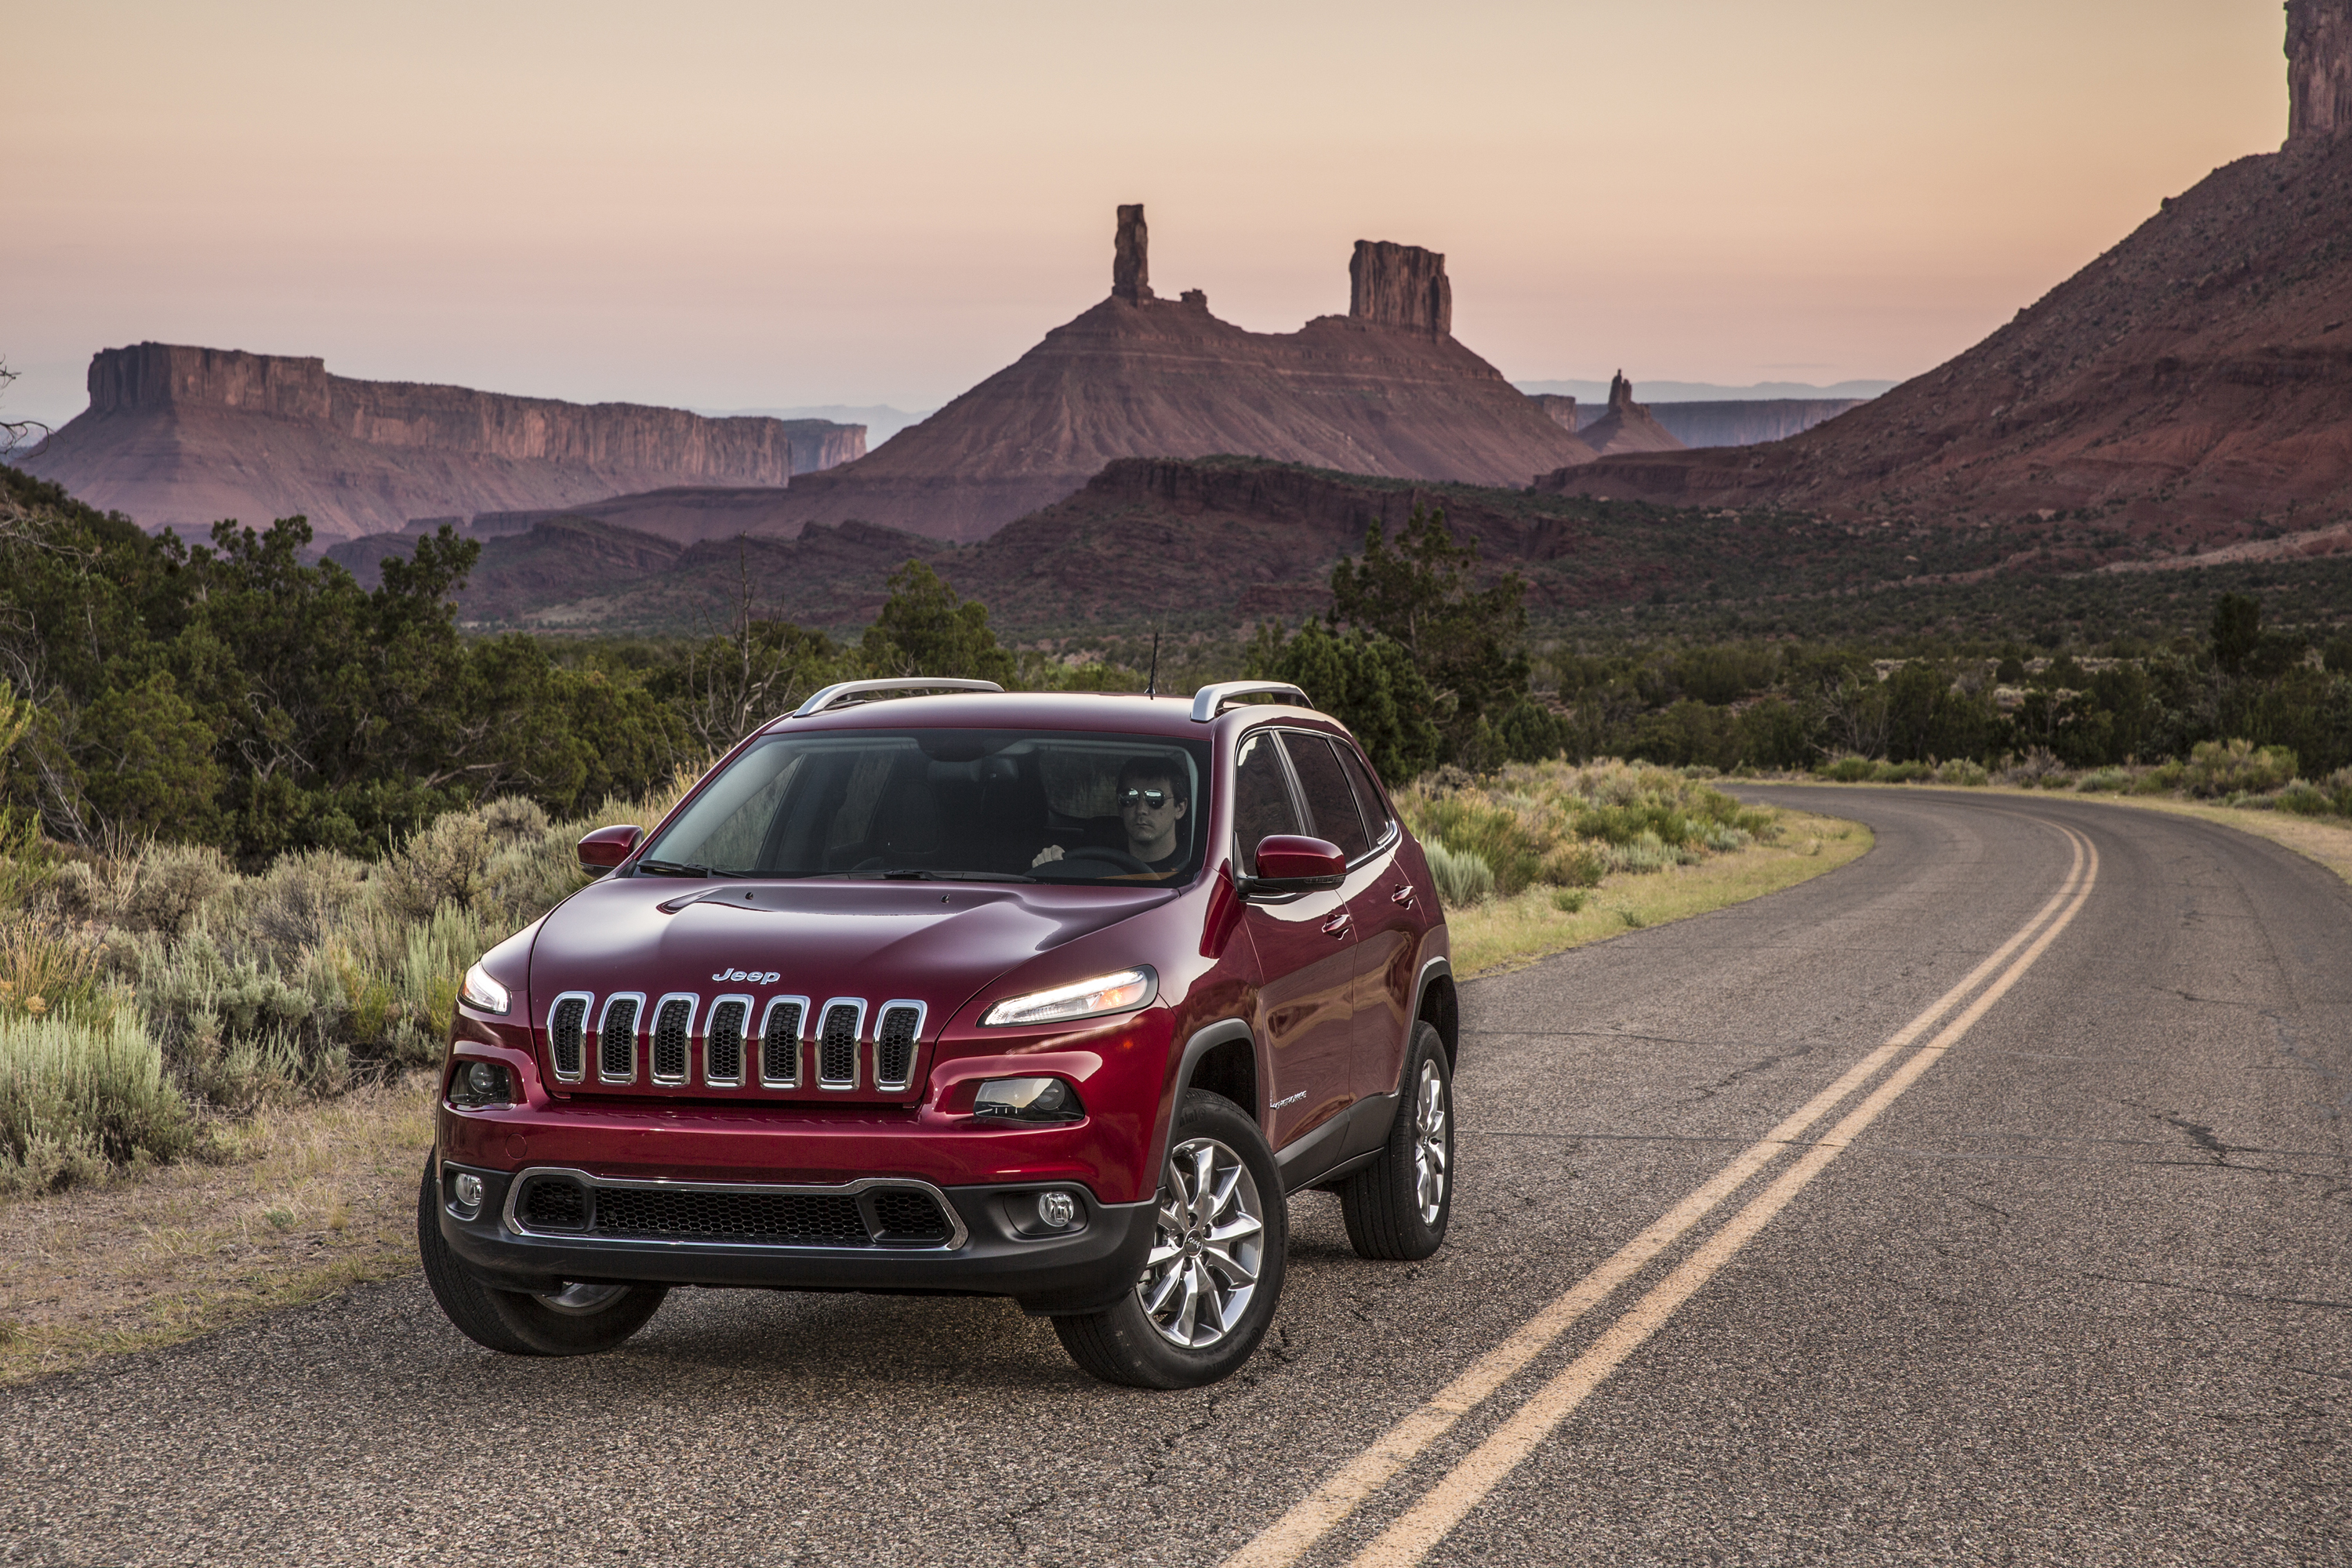 2015 jeep cherokee home best cuv in canada soleil double gold best of